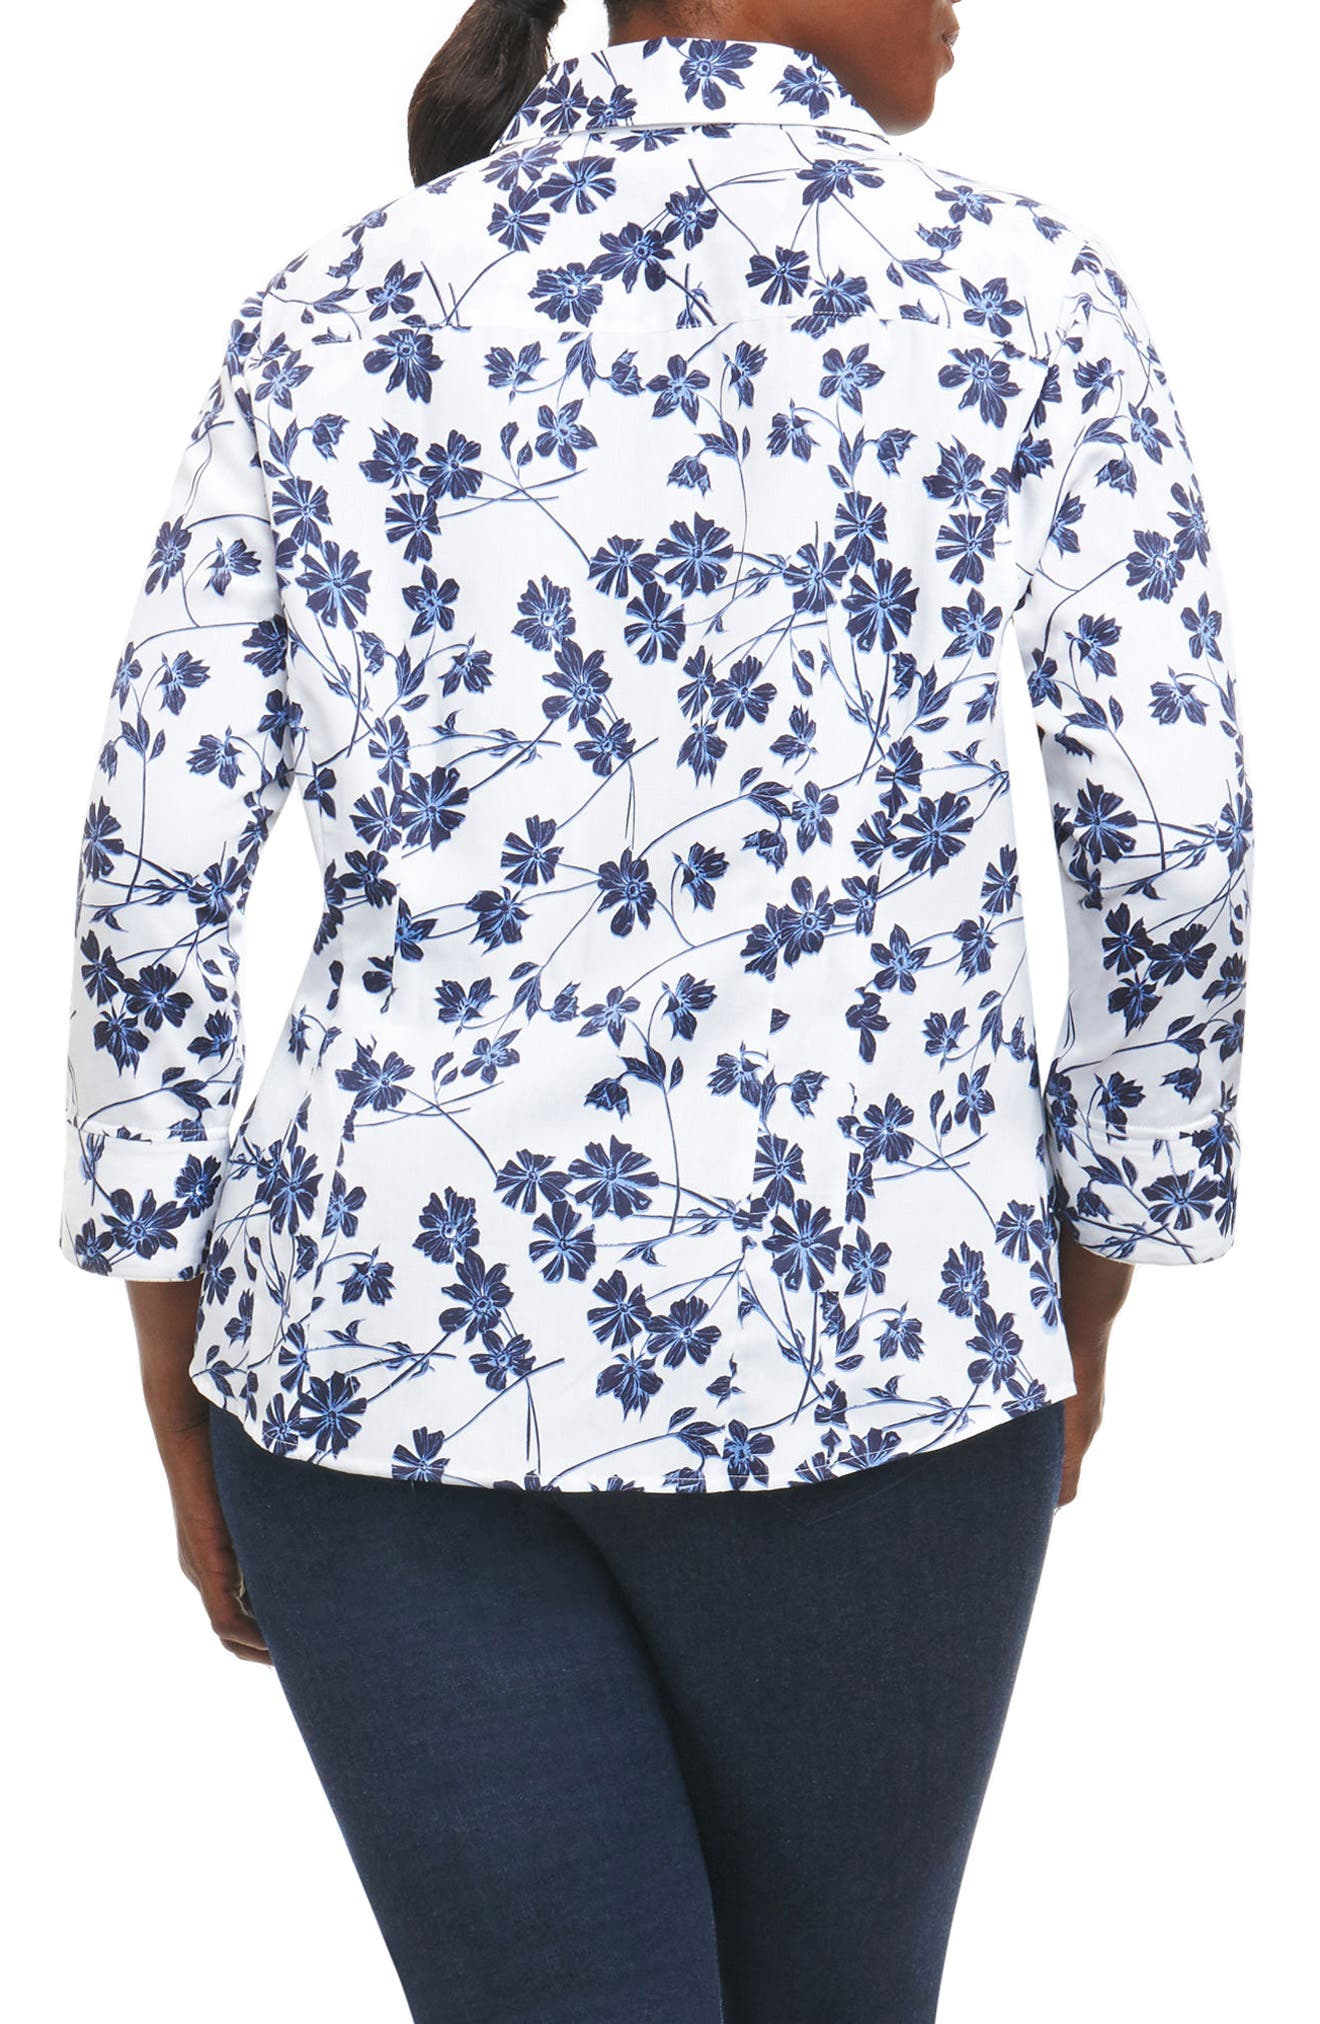 Taylor Floral Print Shirt,                             Alternate thumbnail 2, color,                             White/ Navy